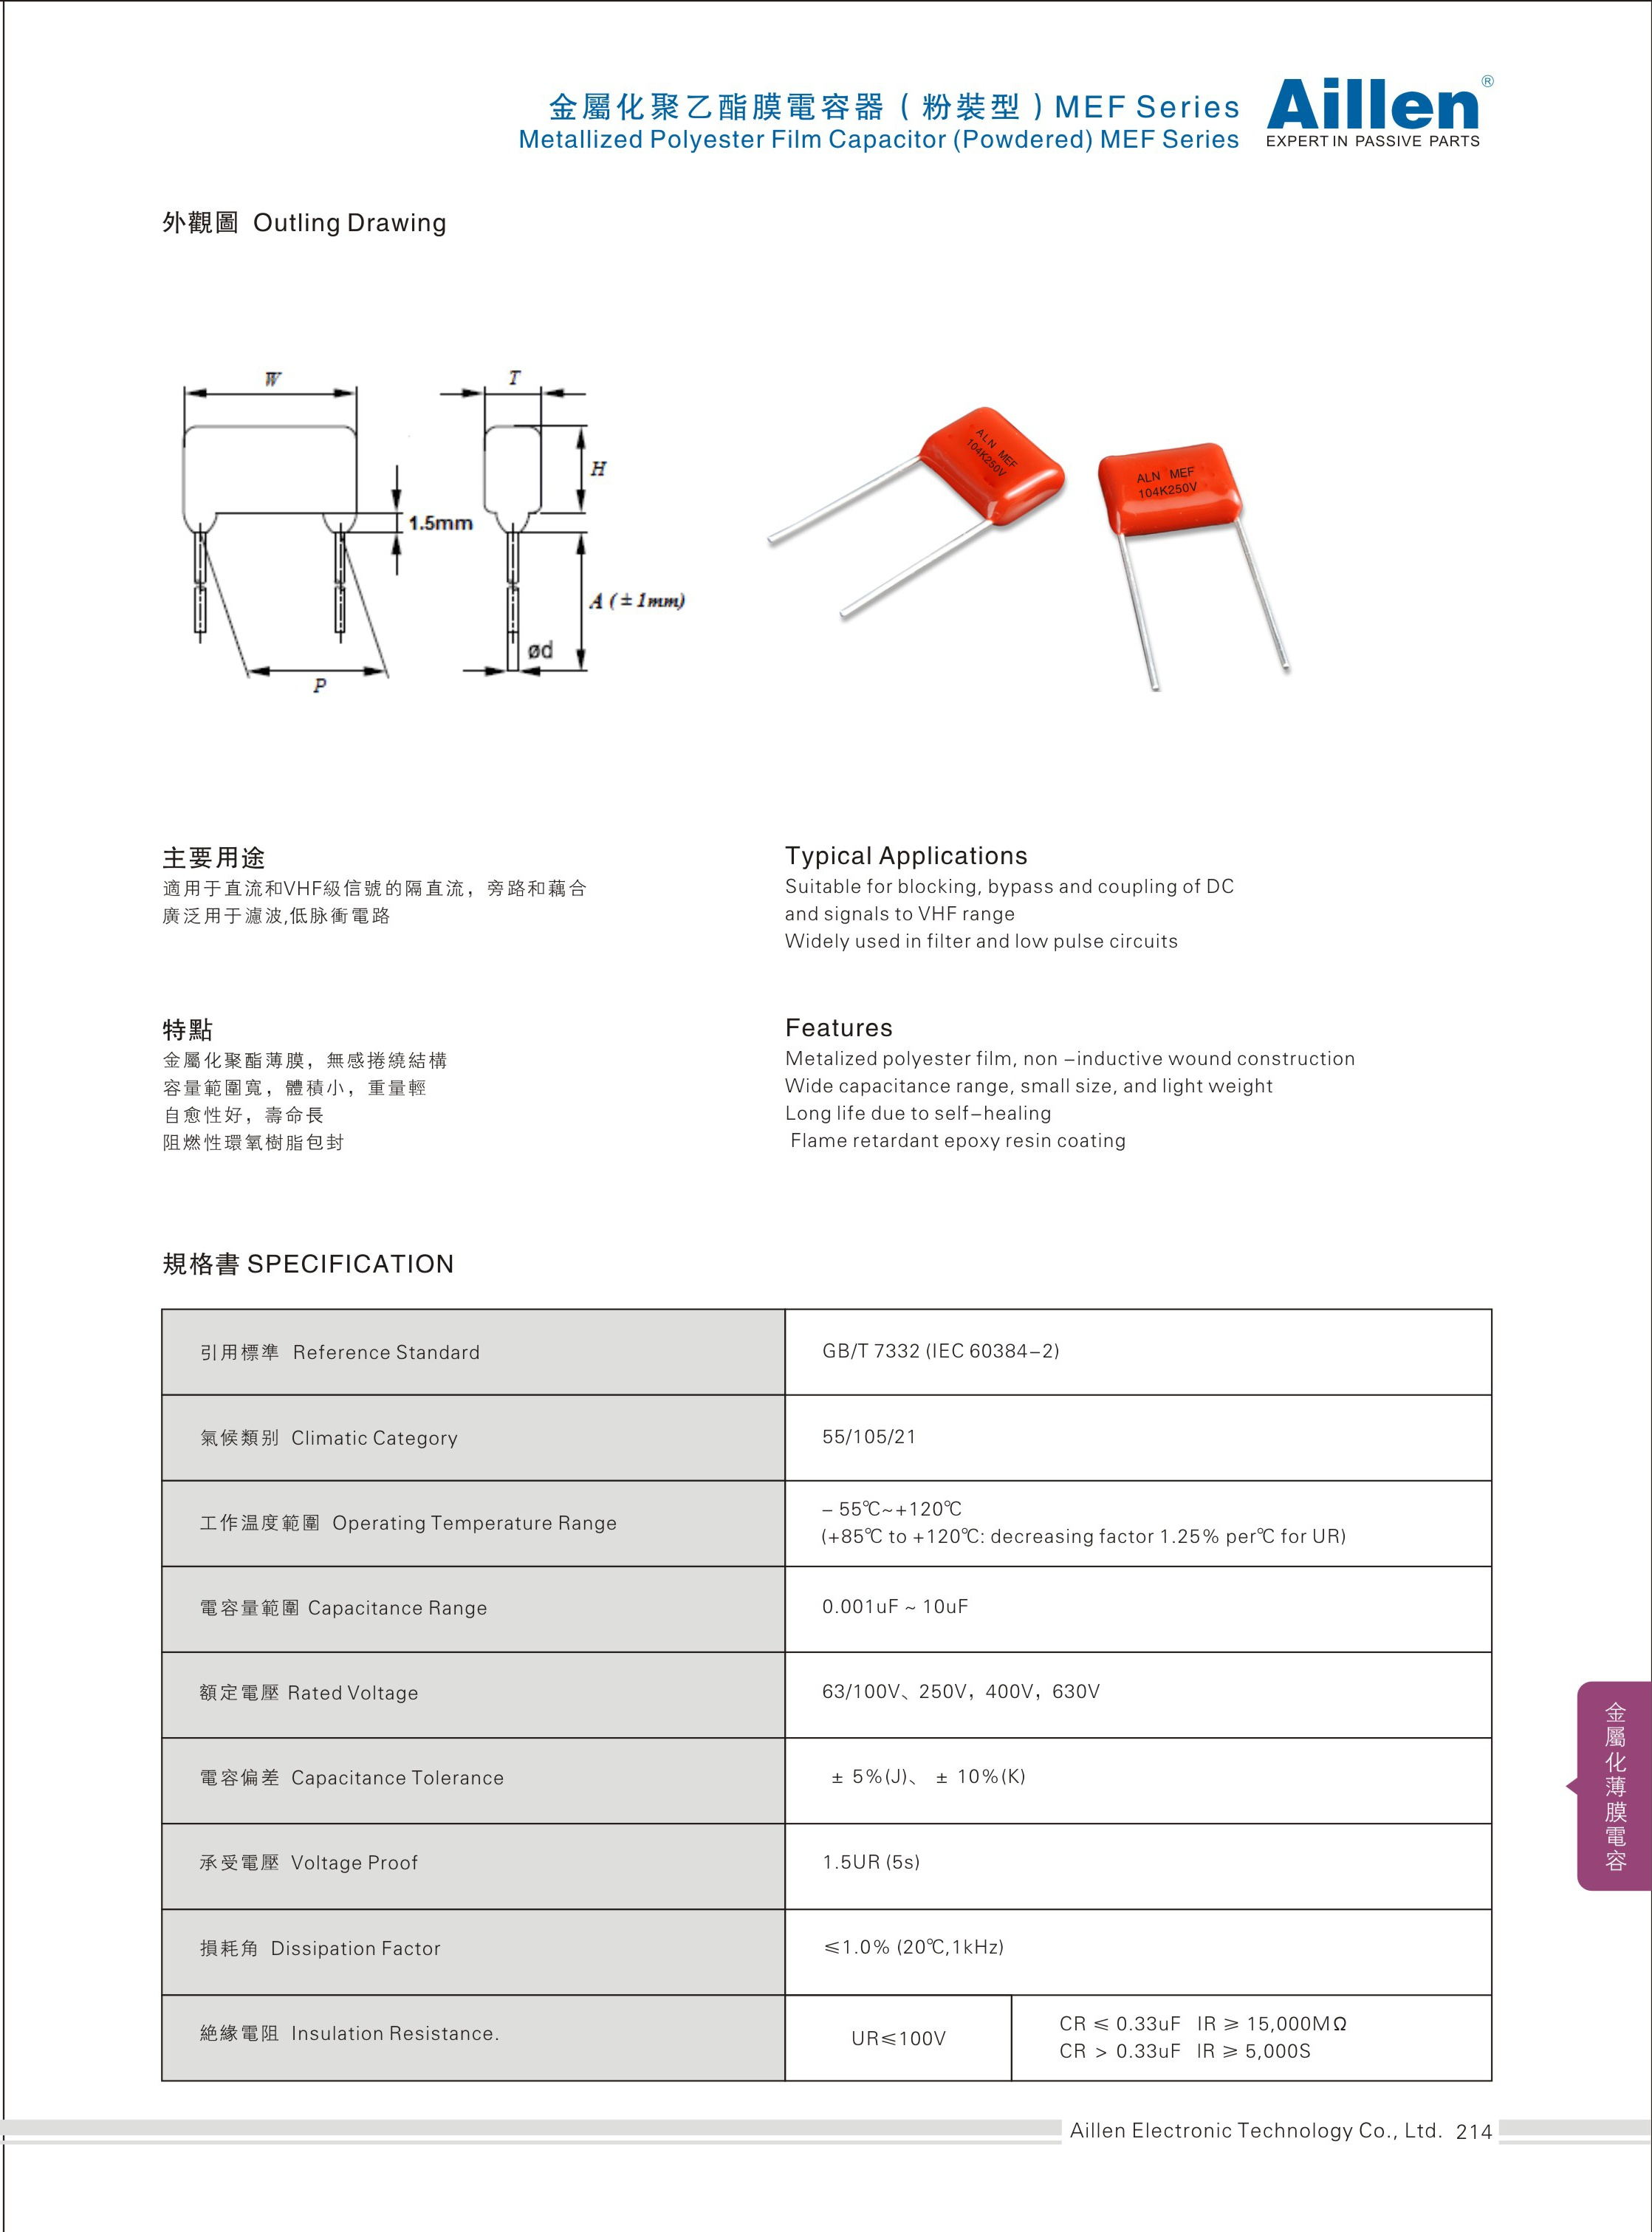 Metallized polyester film capacitor(Powdered) MEF series